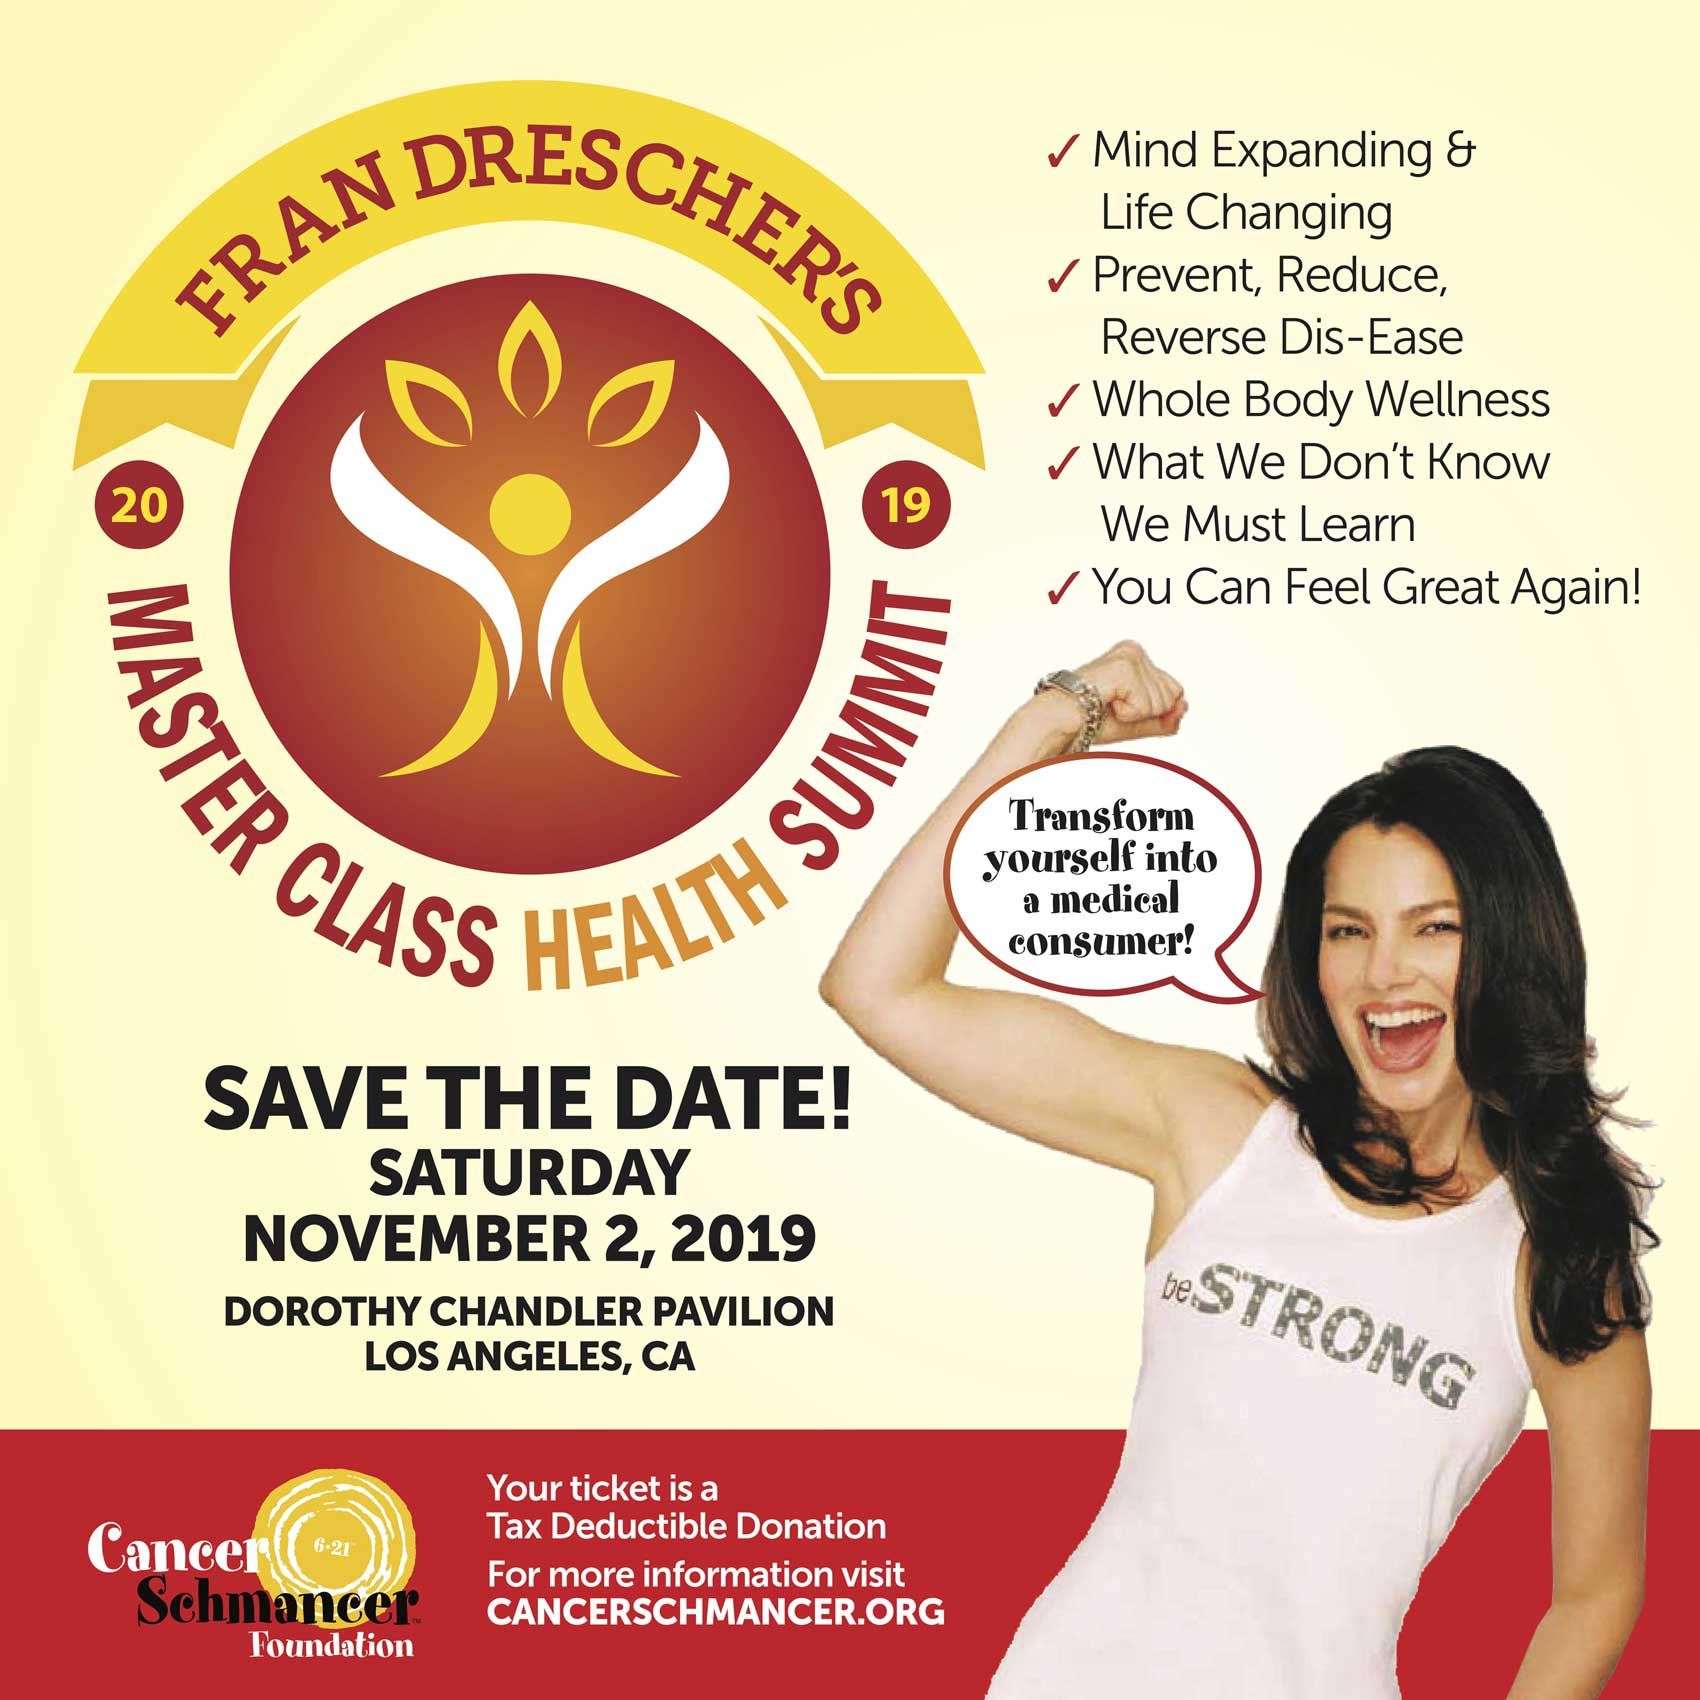 Fran Drescher's Health Summit 2019